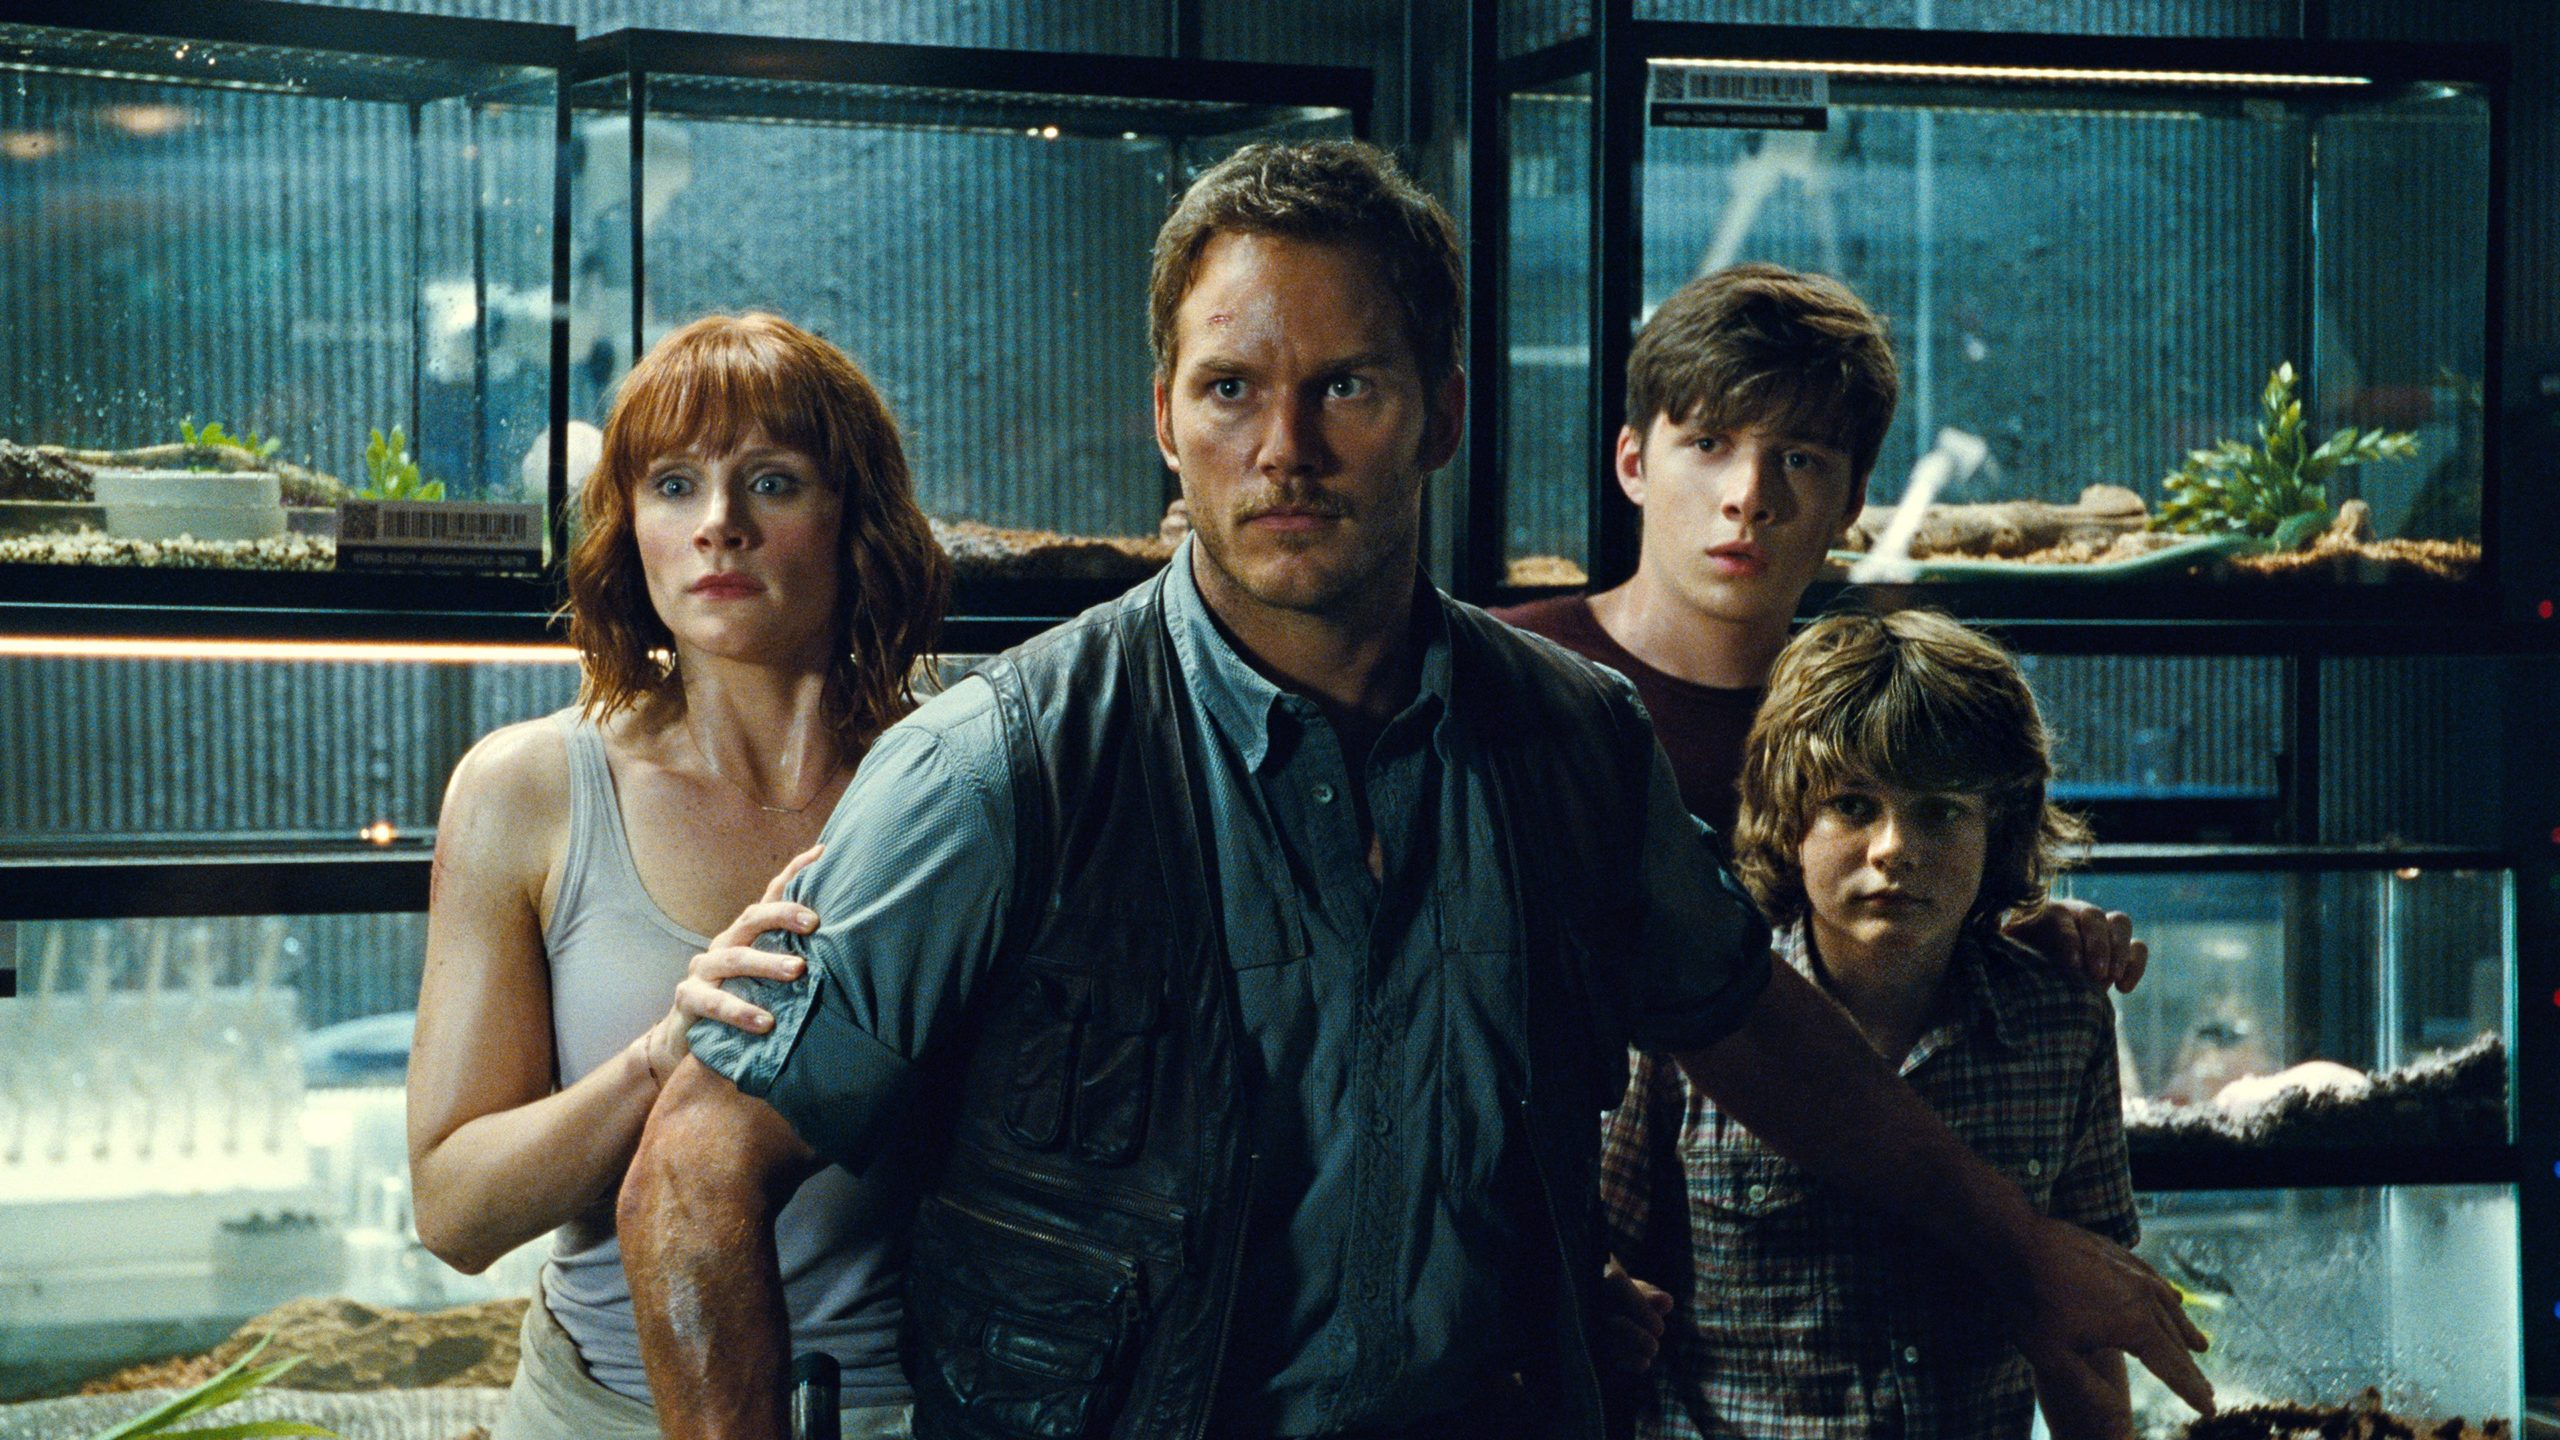 Should Chris Pratt play Owen in a Jurassic World TV show?